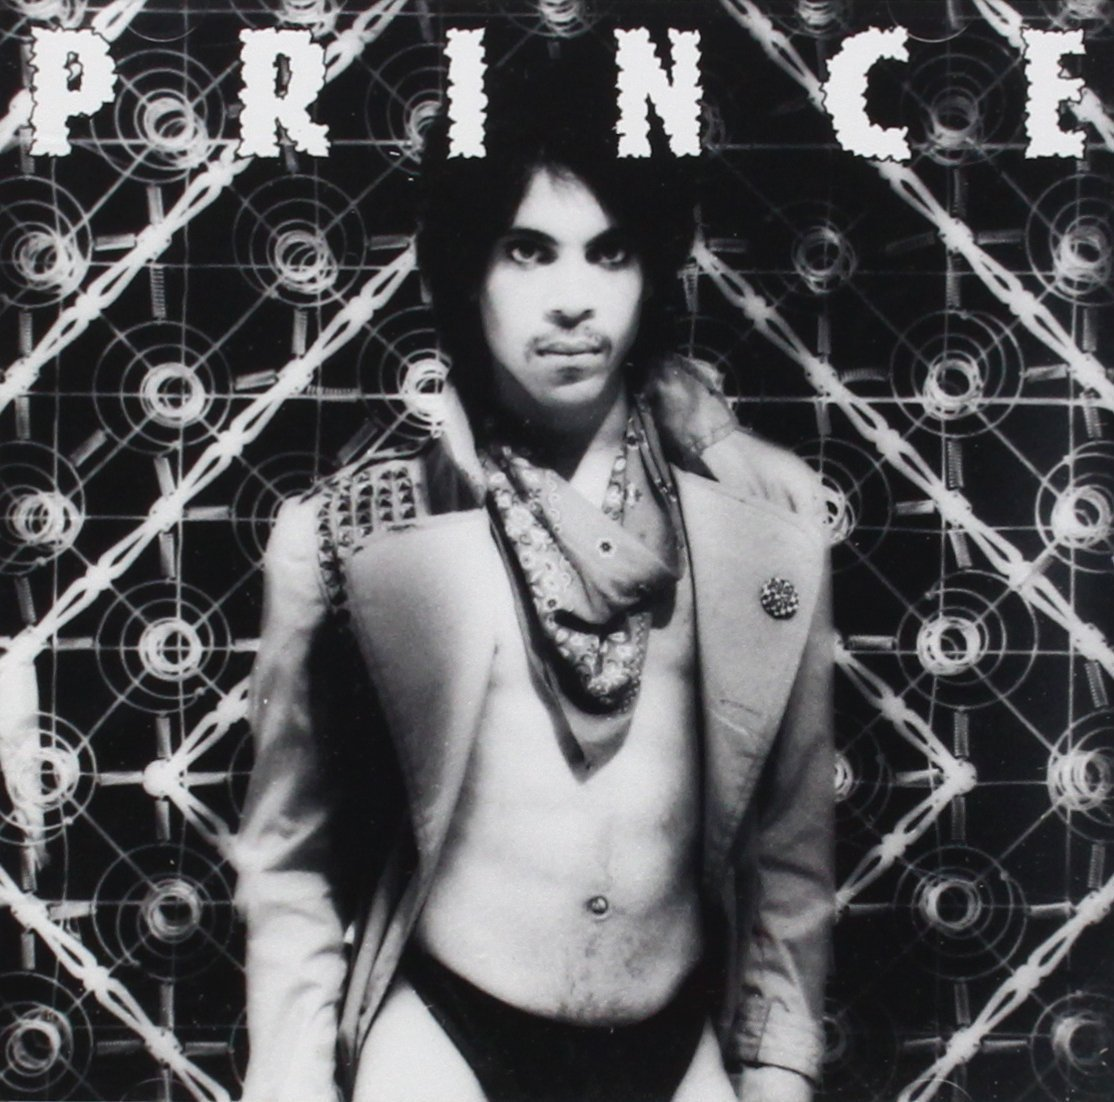 Prince - 'Dirty Mind' cover art